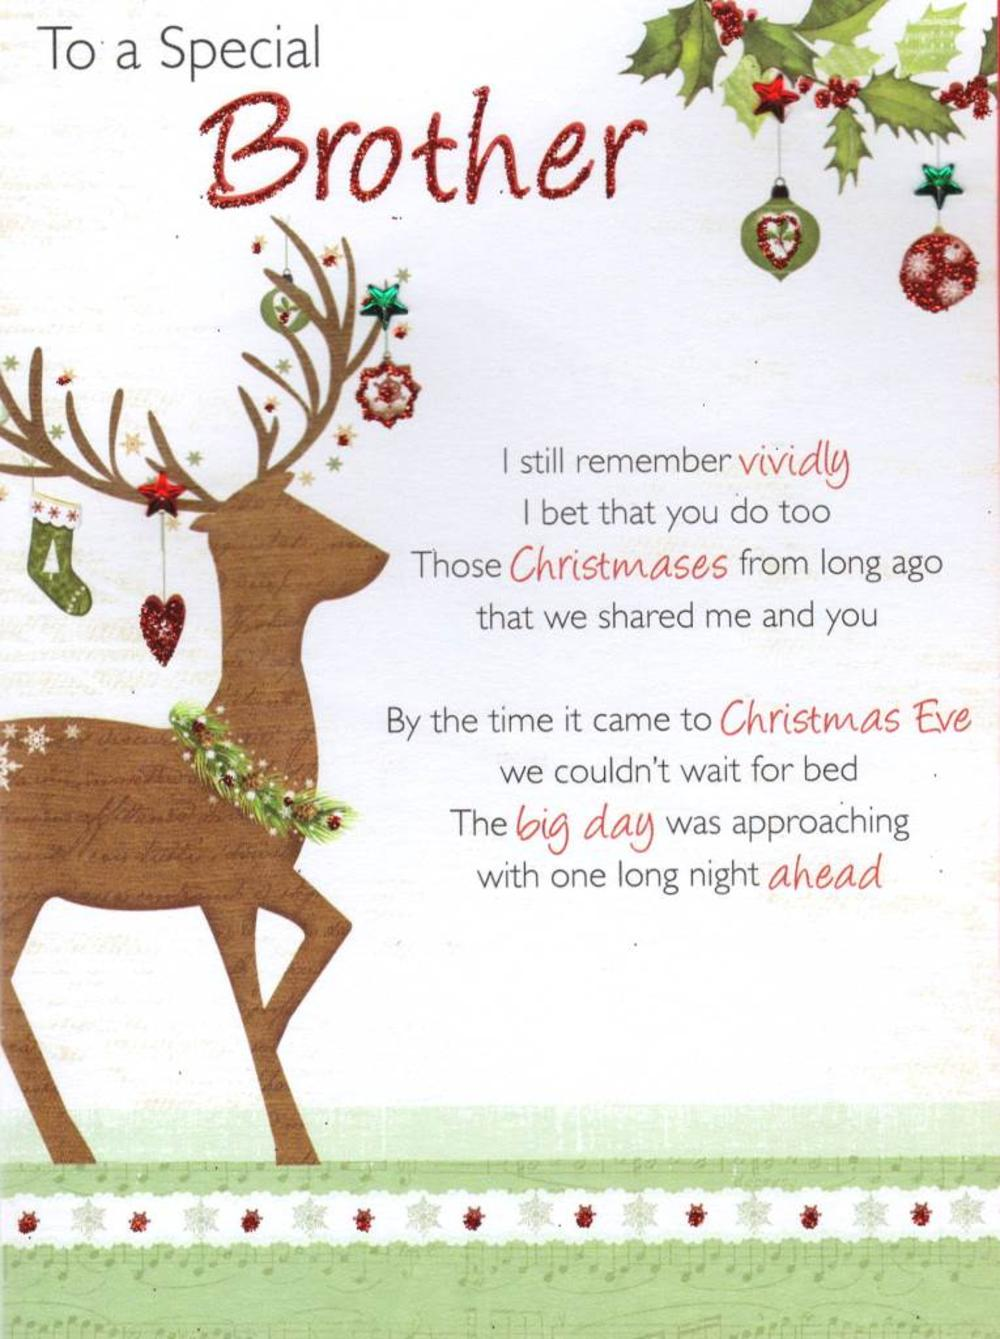 To a special brother christmas greeting card cards love kates to a special brother christmas greeting card kristyandbryce Choice Image